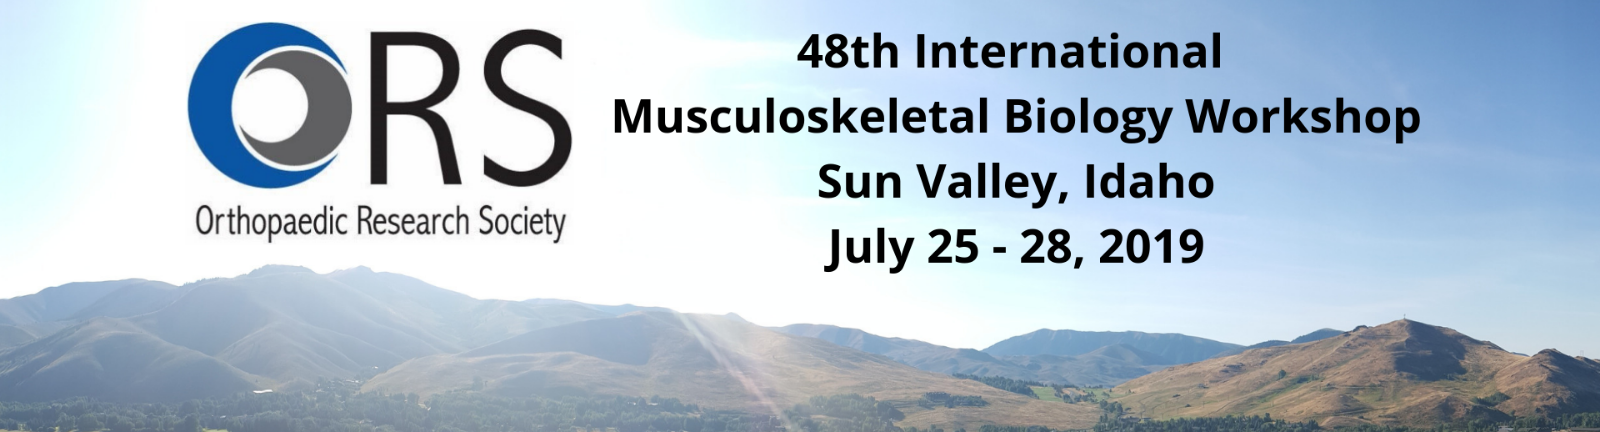 ORS Musculoskeletal Biology Workshop at Sun Valley - ORS